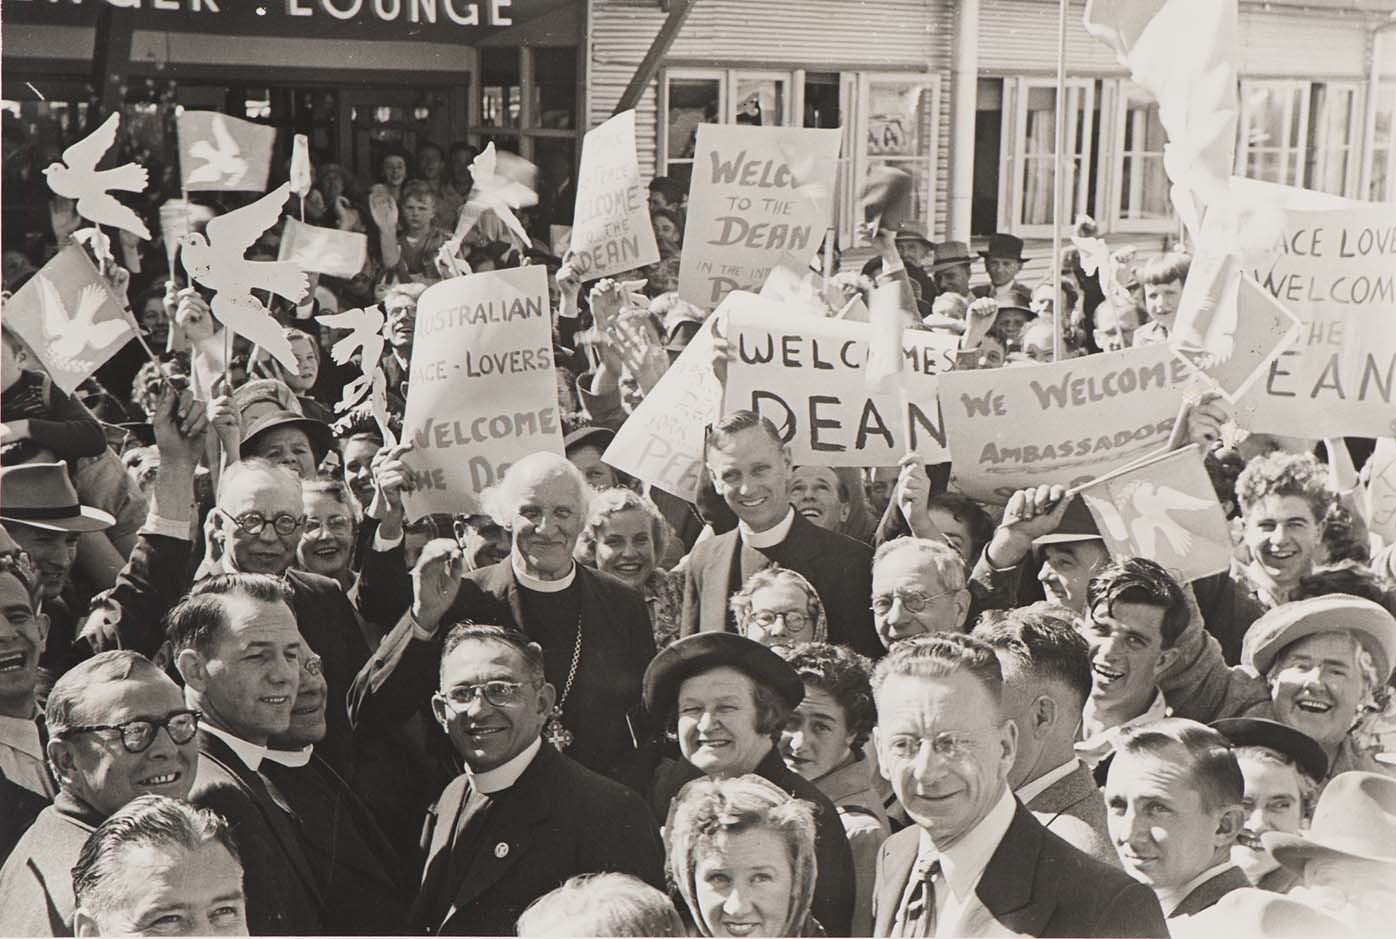 Crowd welcomes the Dean of Canterbury, Hewlett Johnson, at Sydney Airport